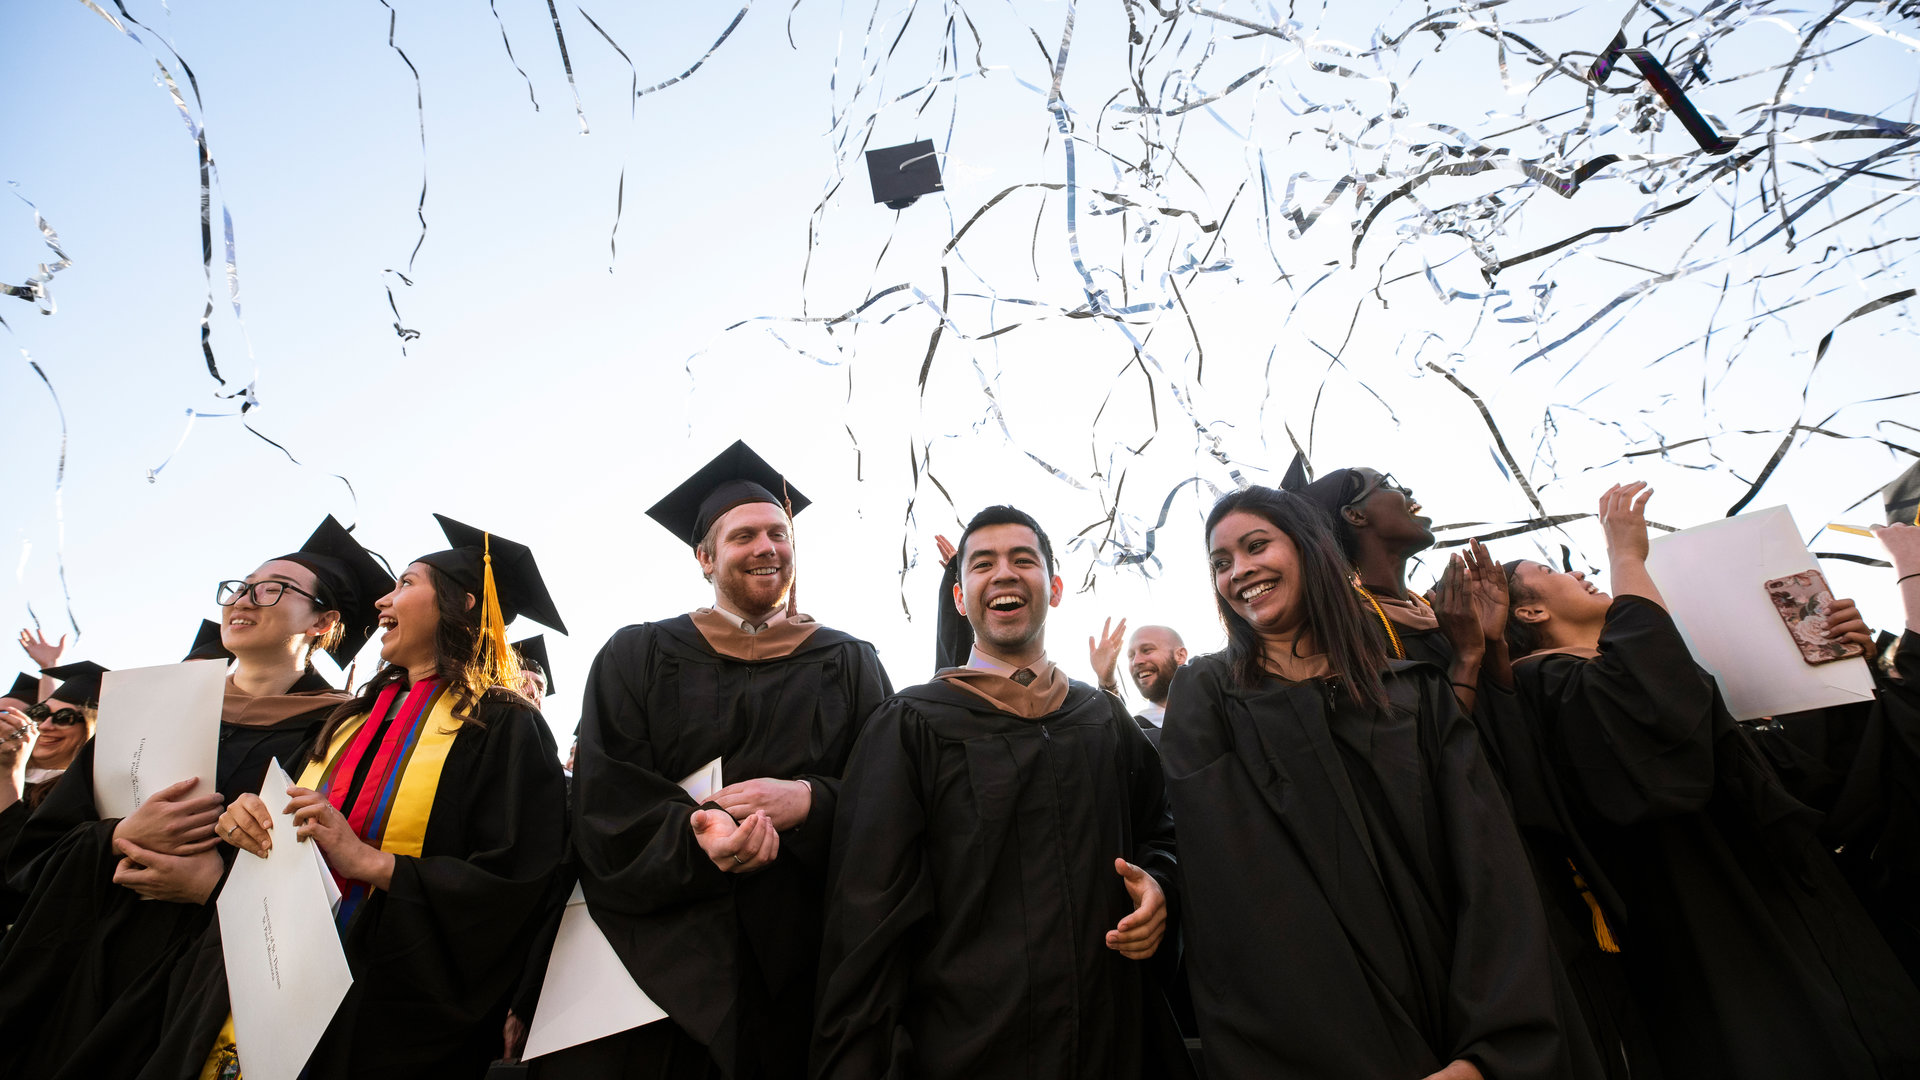 students smile underneath the confetti during graduation